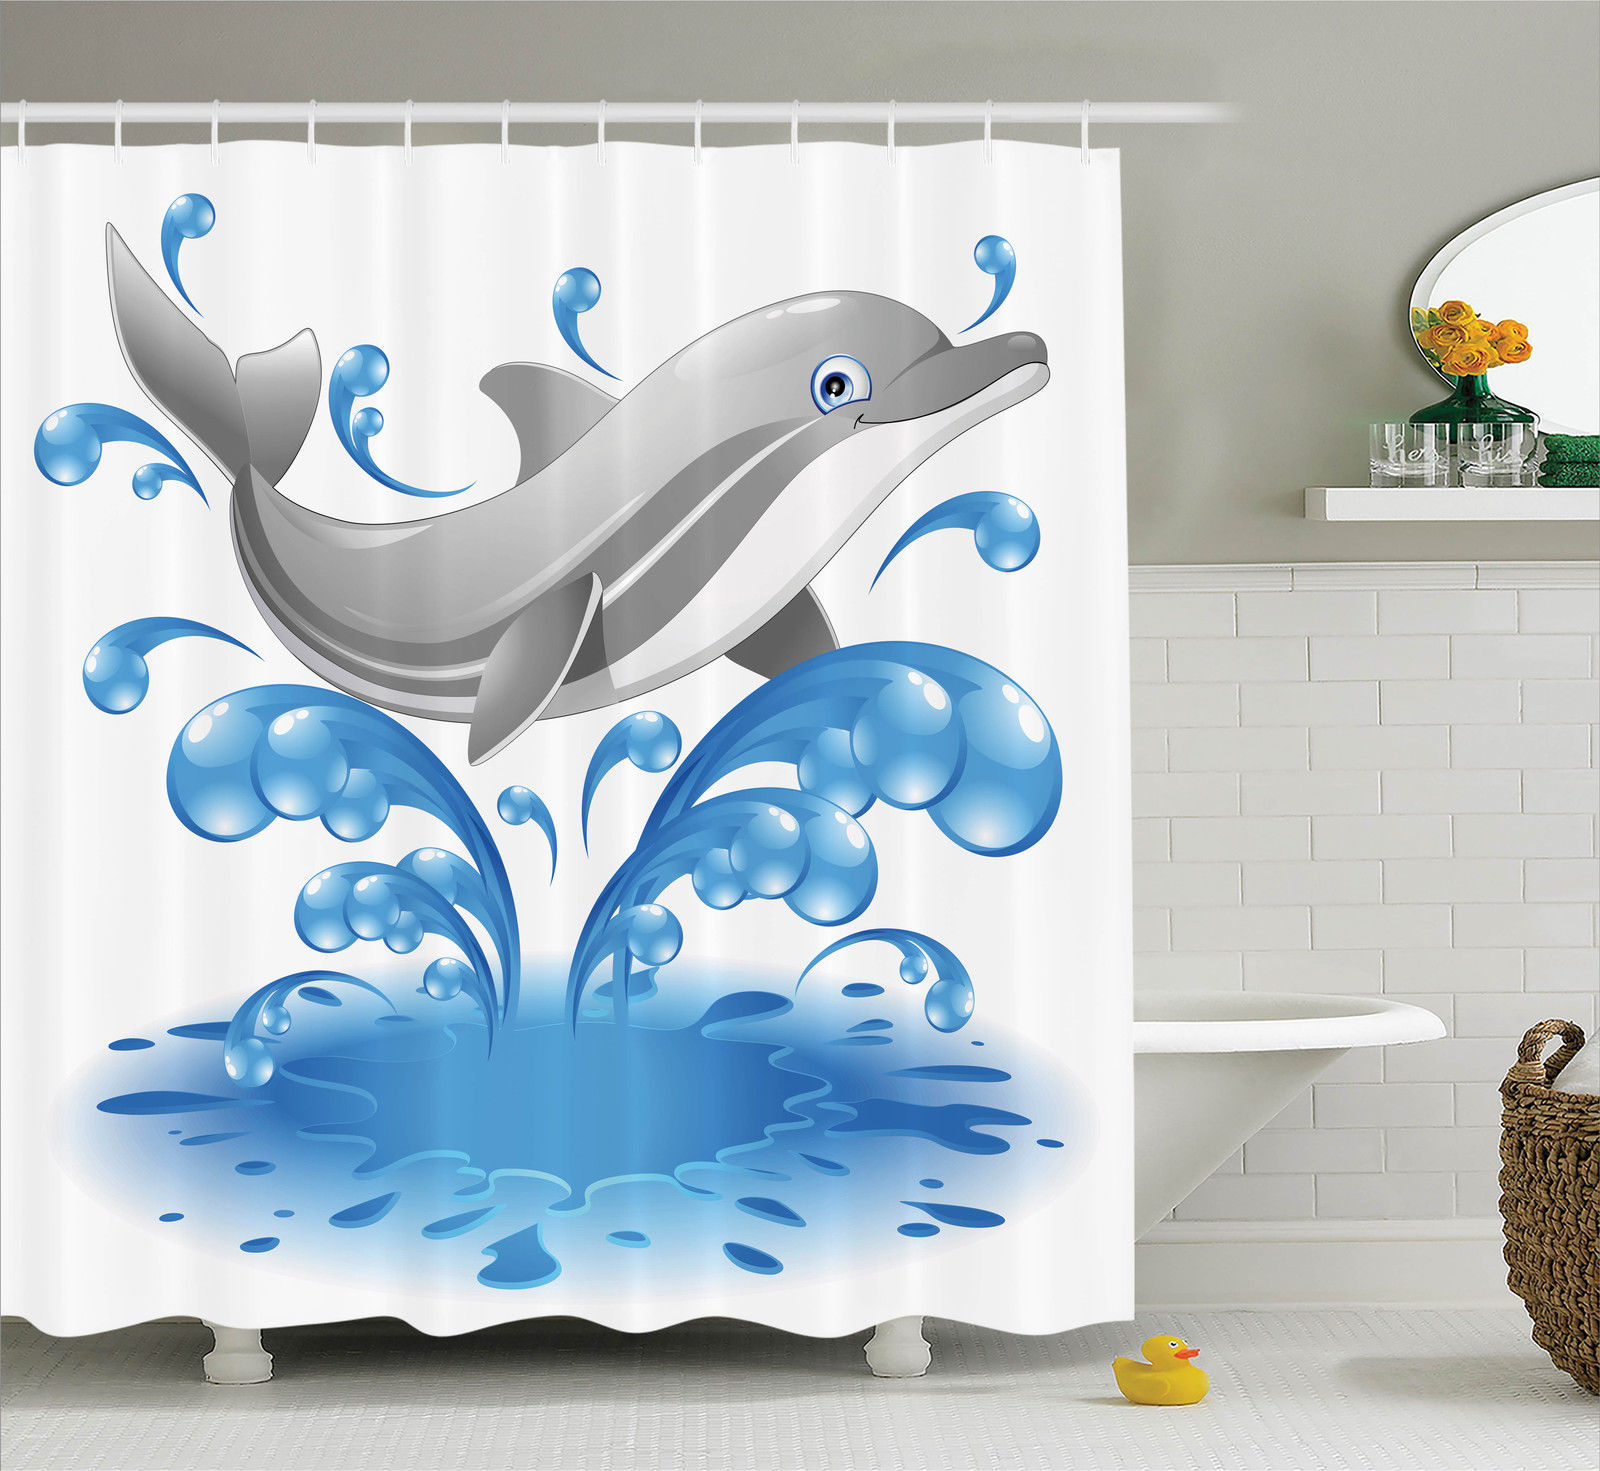 Jumping Dolphin Water Splash Children Cartoon Aquatic Image Shower Curtain Set